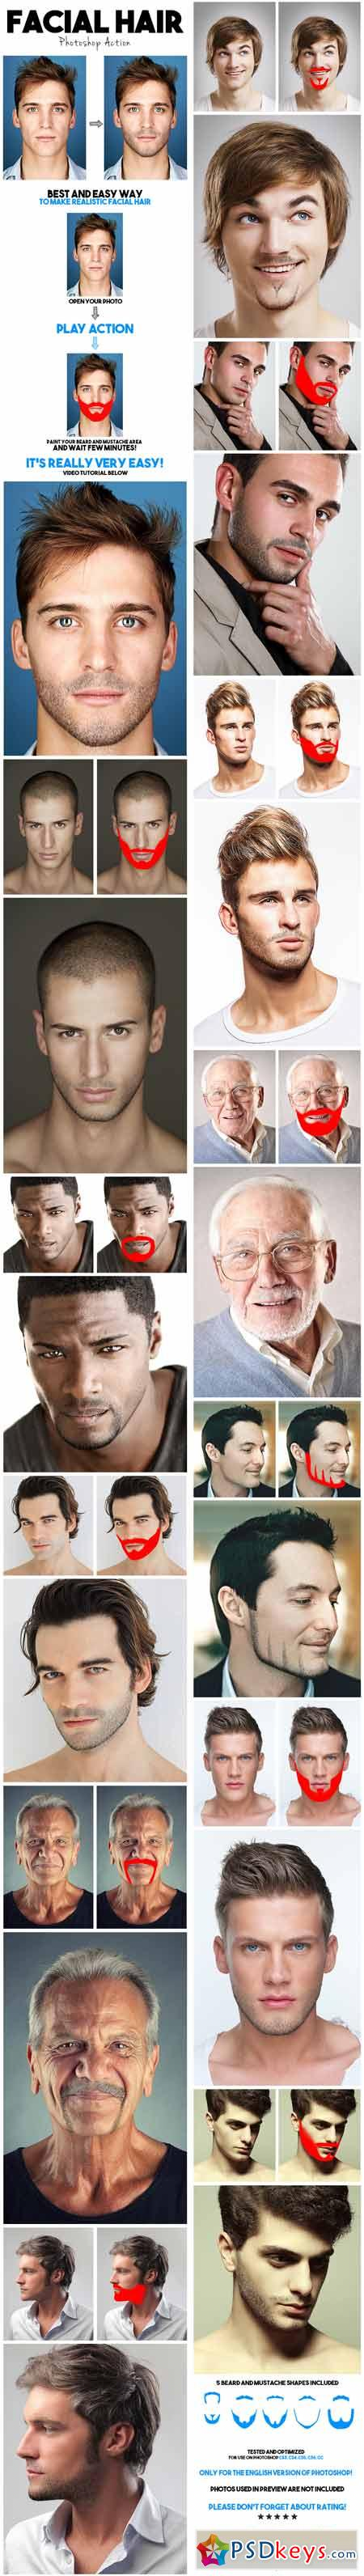 Facial Hair Photoshop Action 13434912 » Free Download